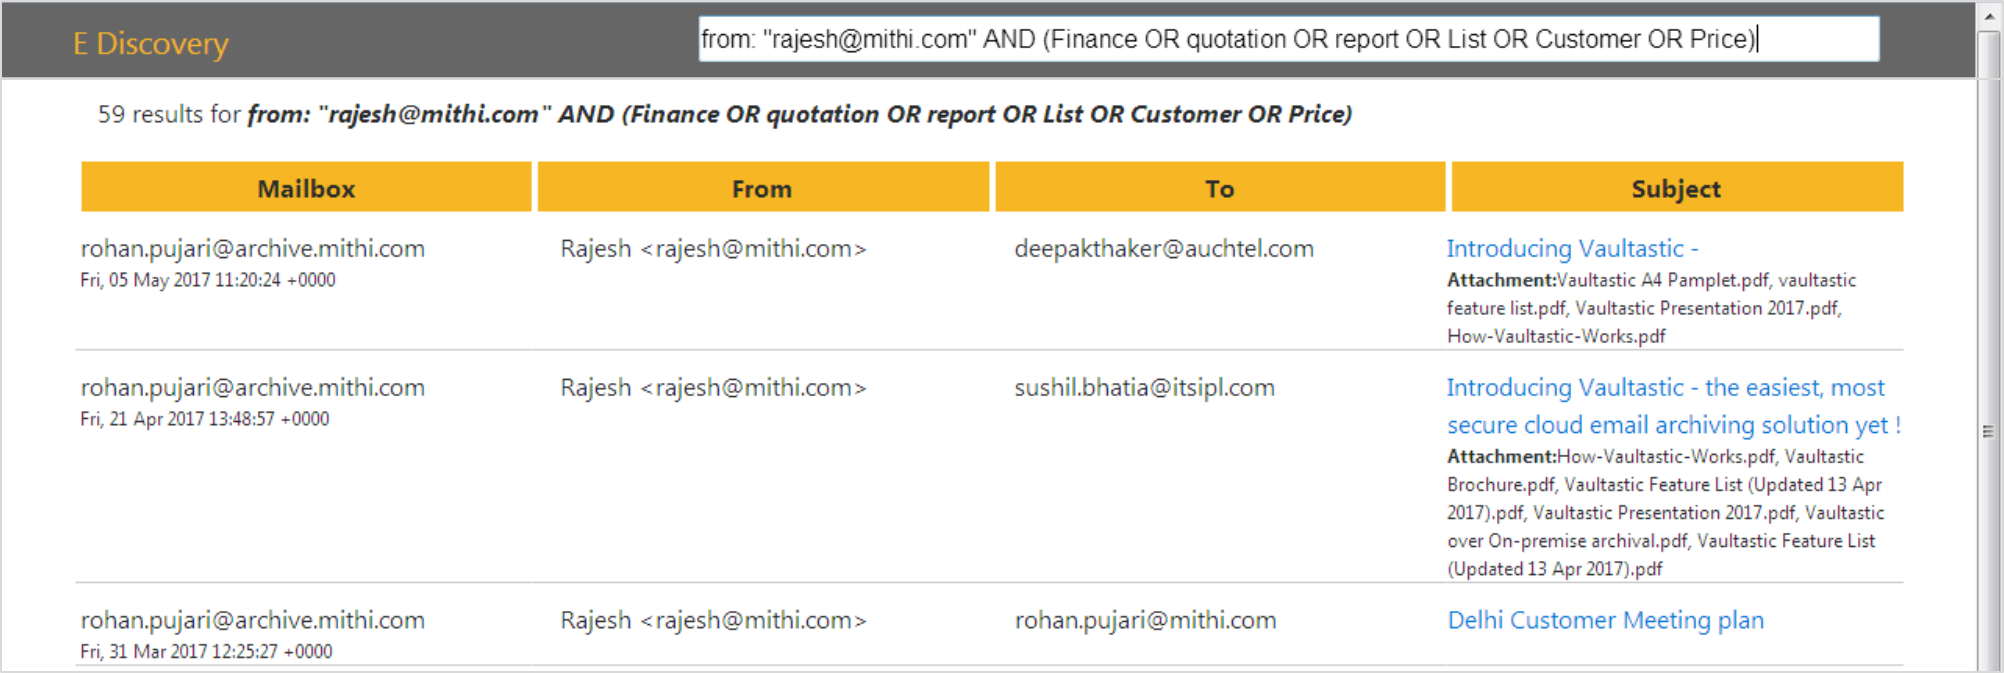 "ediscovery: Search if Rajesh has sent any mail to anybody, with any of these words ""Finance"", ""Quotation"", ""report"", ""List"", ""Customer"", or ""Quote""?"